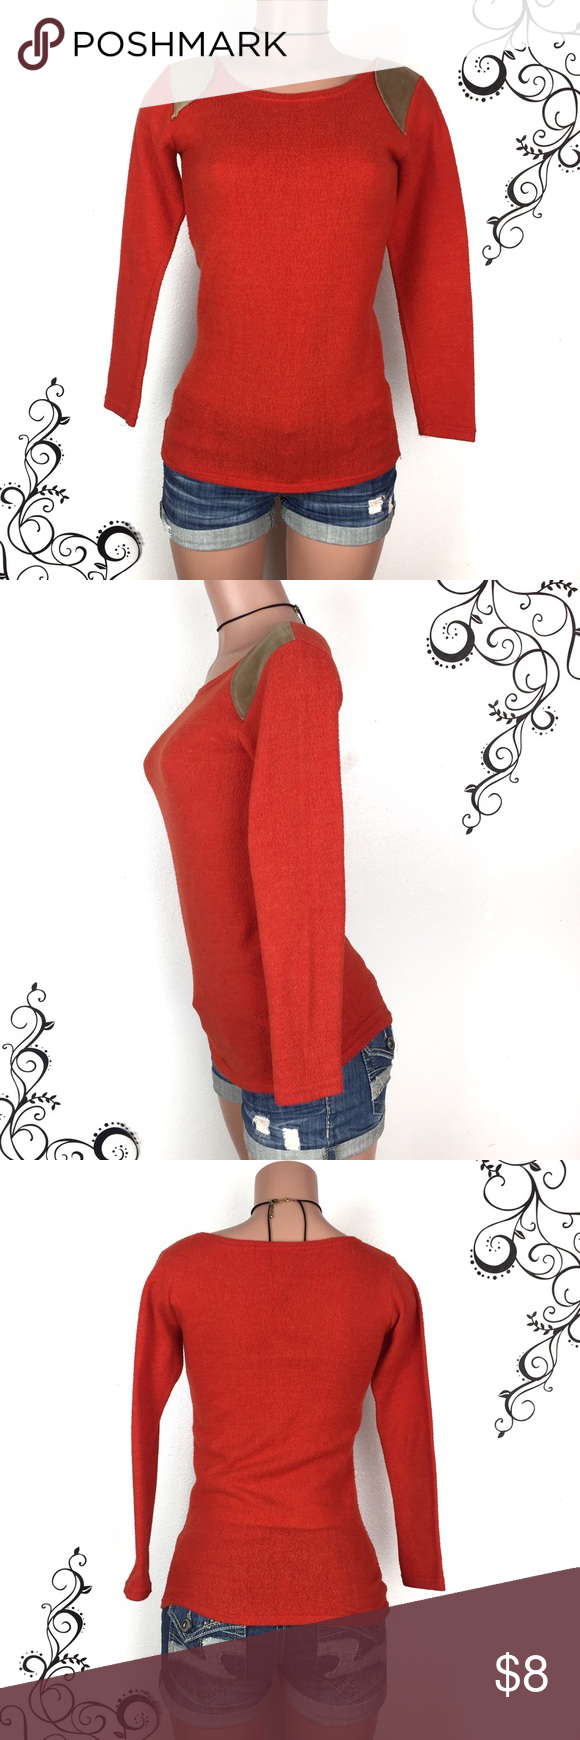 """Red orange fuzzy sweater w corduroy shoulders Red orange fuzzy sweater with camel colored corduroy shoulder accents.  Warm non-itchy  fabric.  I bought this to keep me warm when I was in Korea.   Condition: worn and washed about 5 times, some pilling, no other visible flaws, good condition overall Size: XS Chest: 15.5 inches Length: 26"""" Arms: 17"""" 🚫trade, final price Korean Boutique Sweaters Crew & Scoop Necks"""